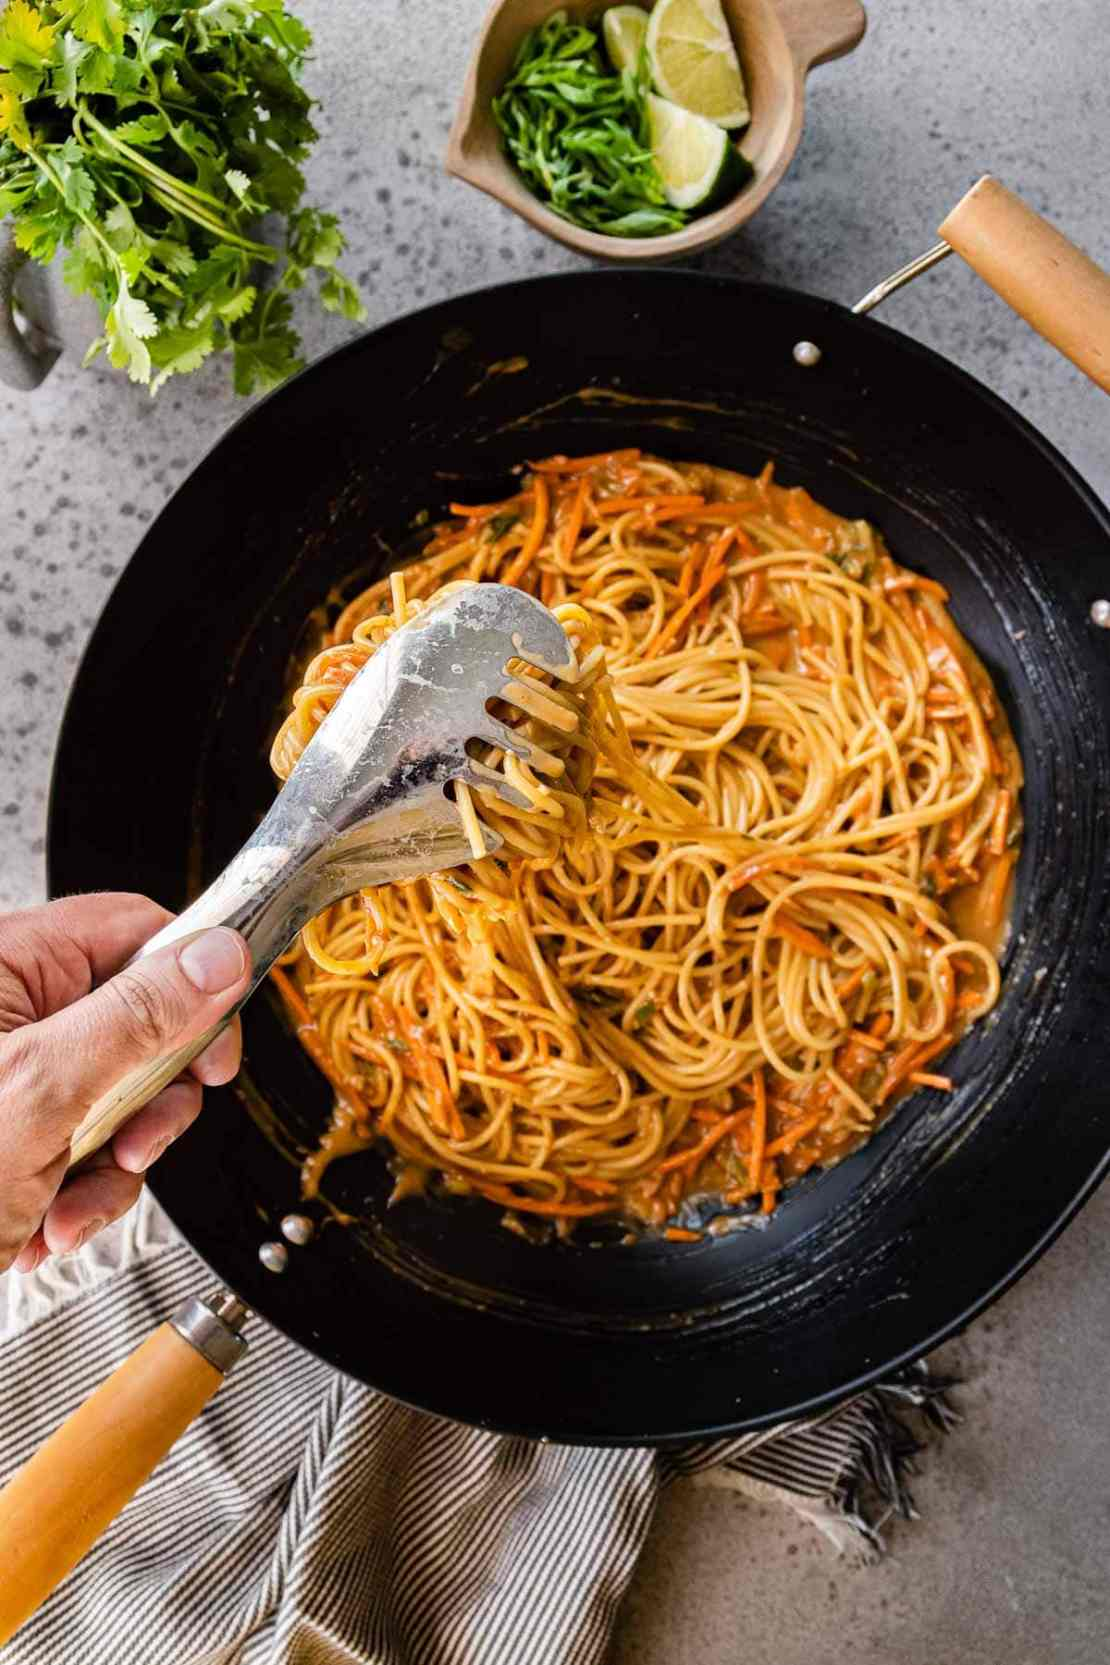 Mixing noodles and sauce in pan for Spicy Peanut Noodles